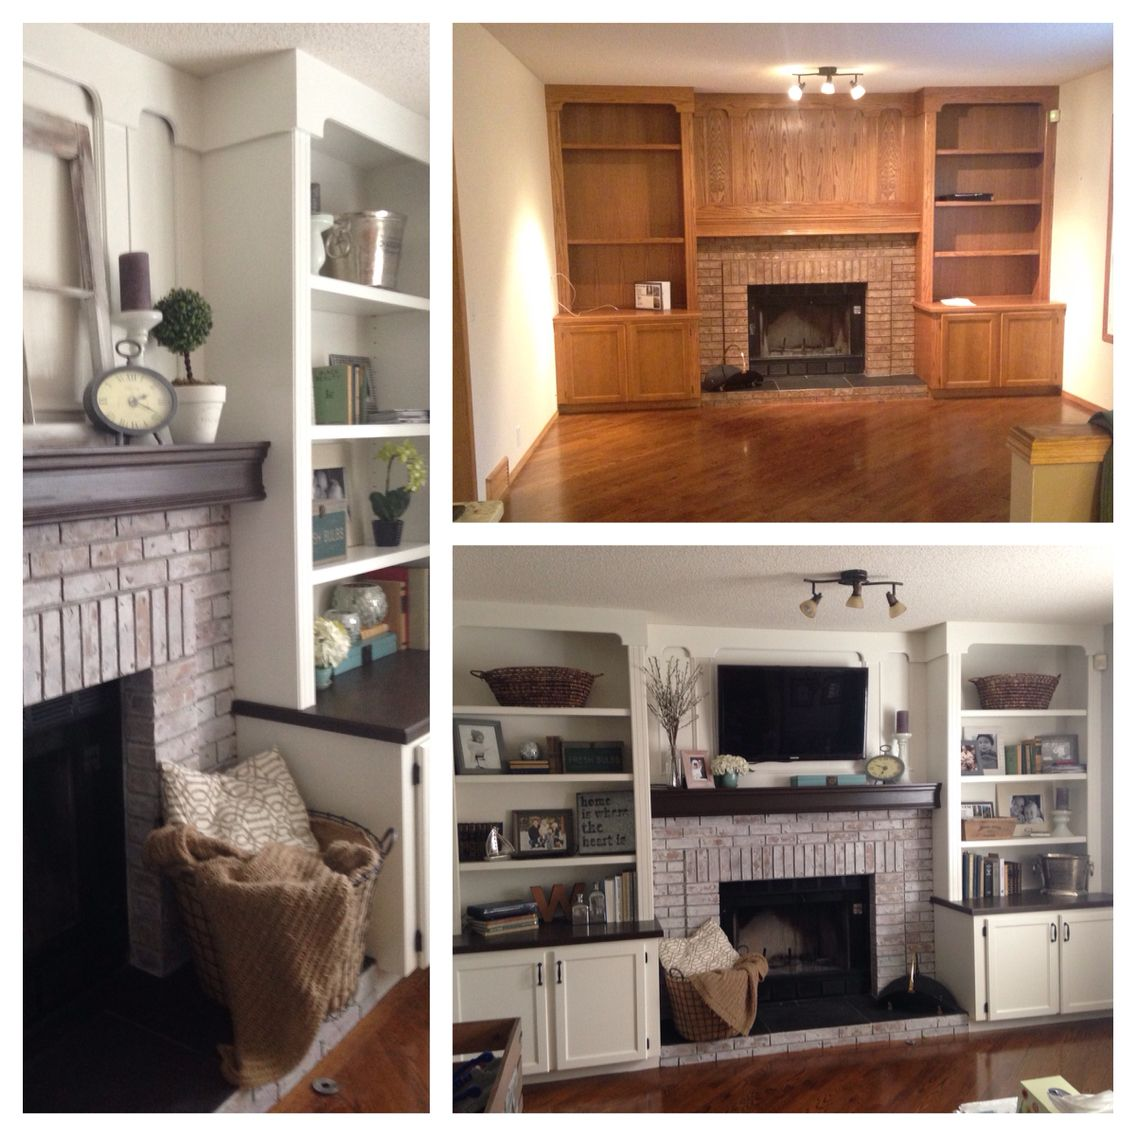 White Wash Gel Stain: White Washed Brick And Painted Oak...Bam, New Fireplace